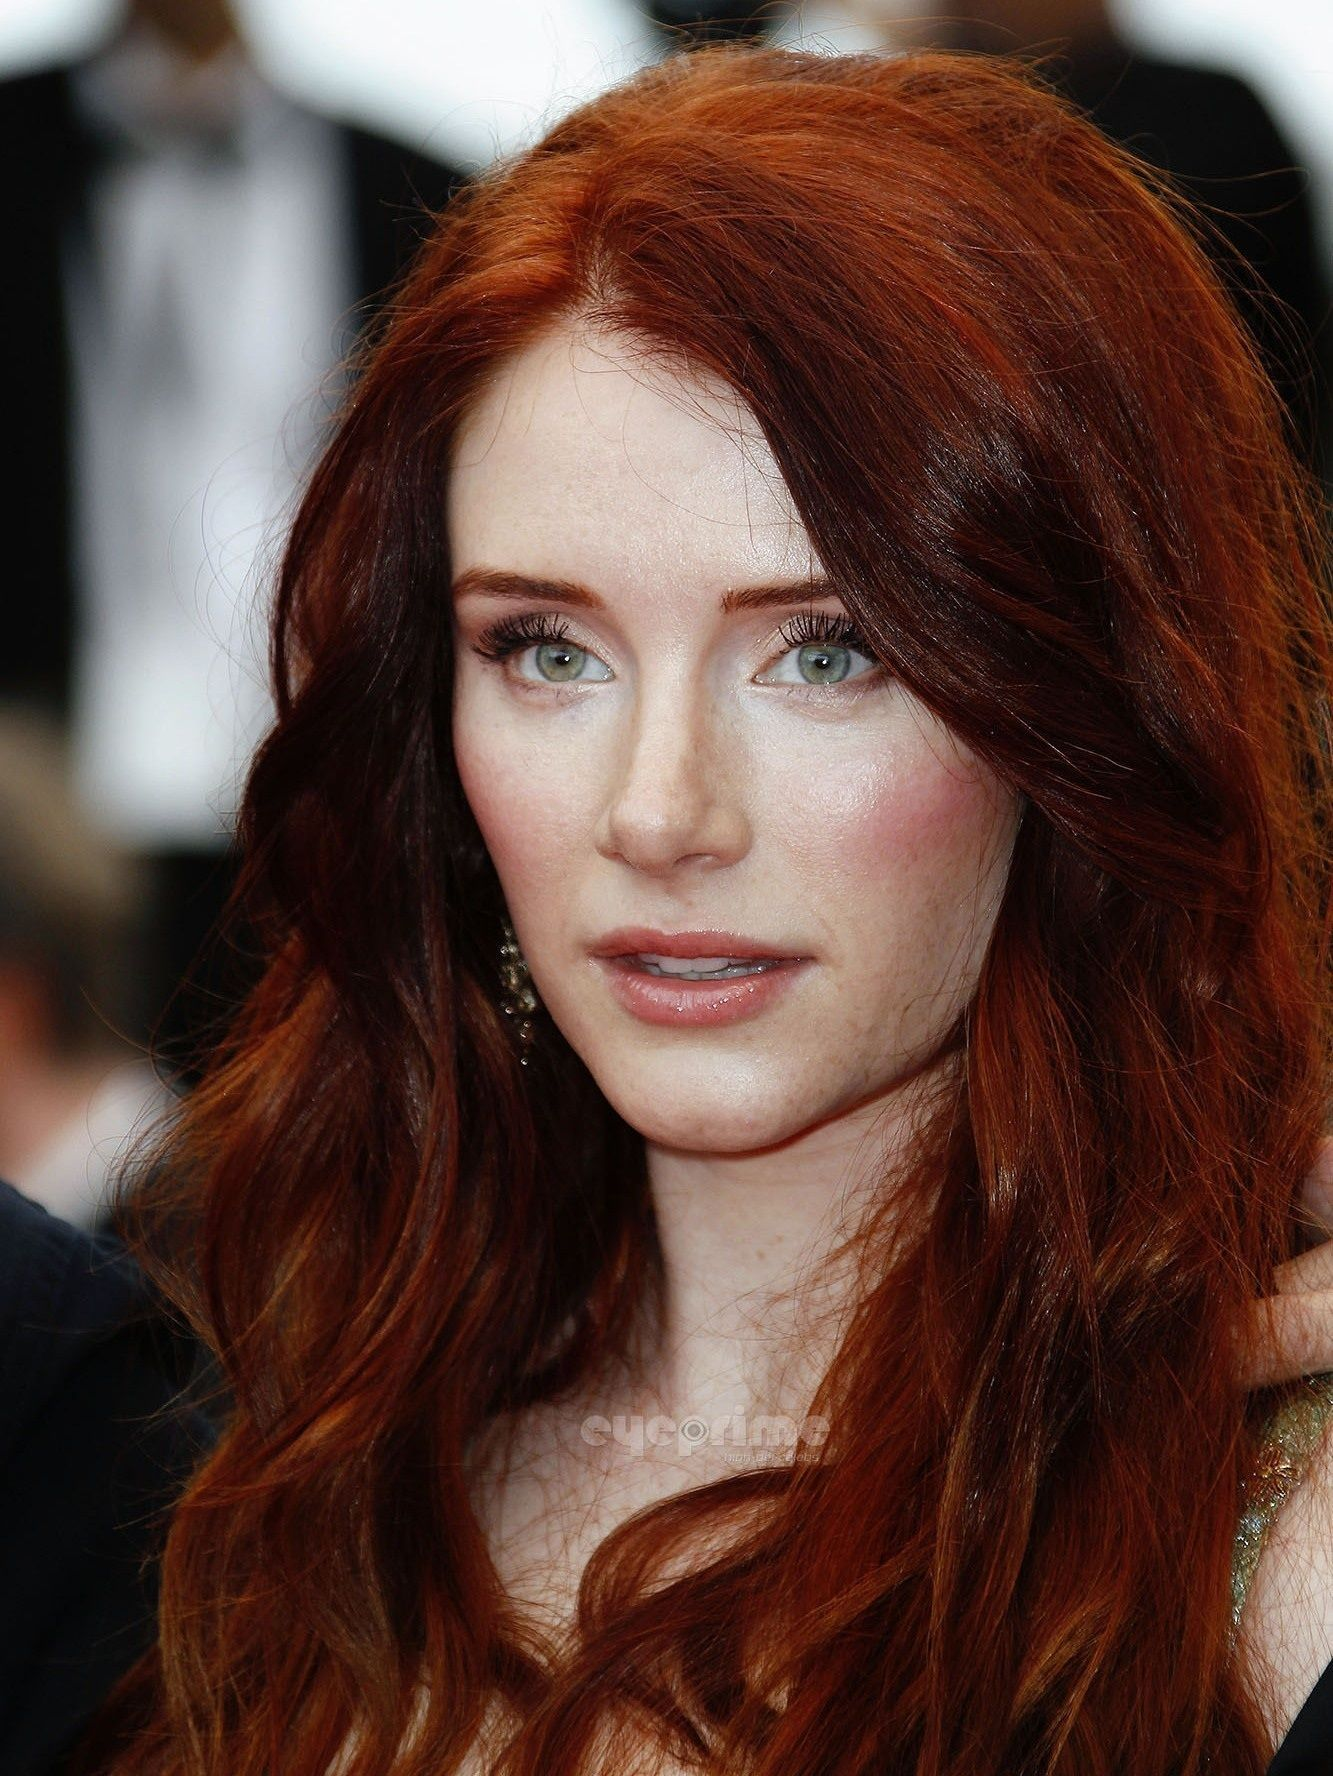 Bryce Dallas Howard Sleeping Beauty Premiere During Cannes Film